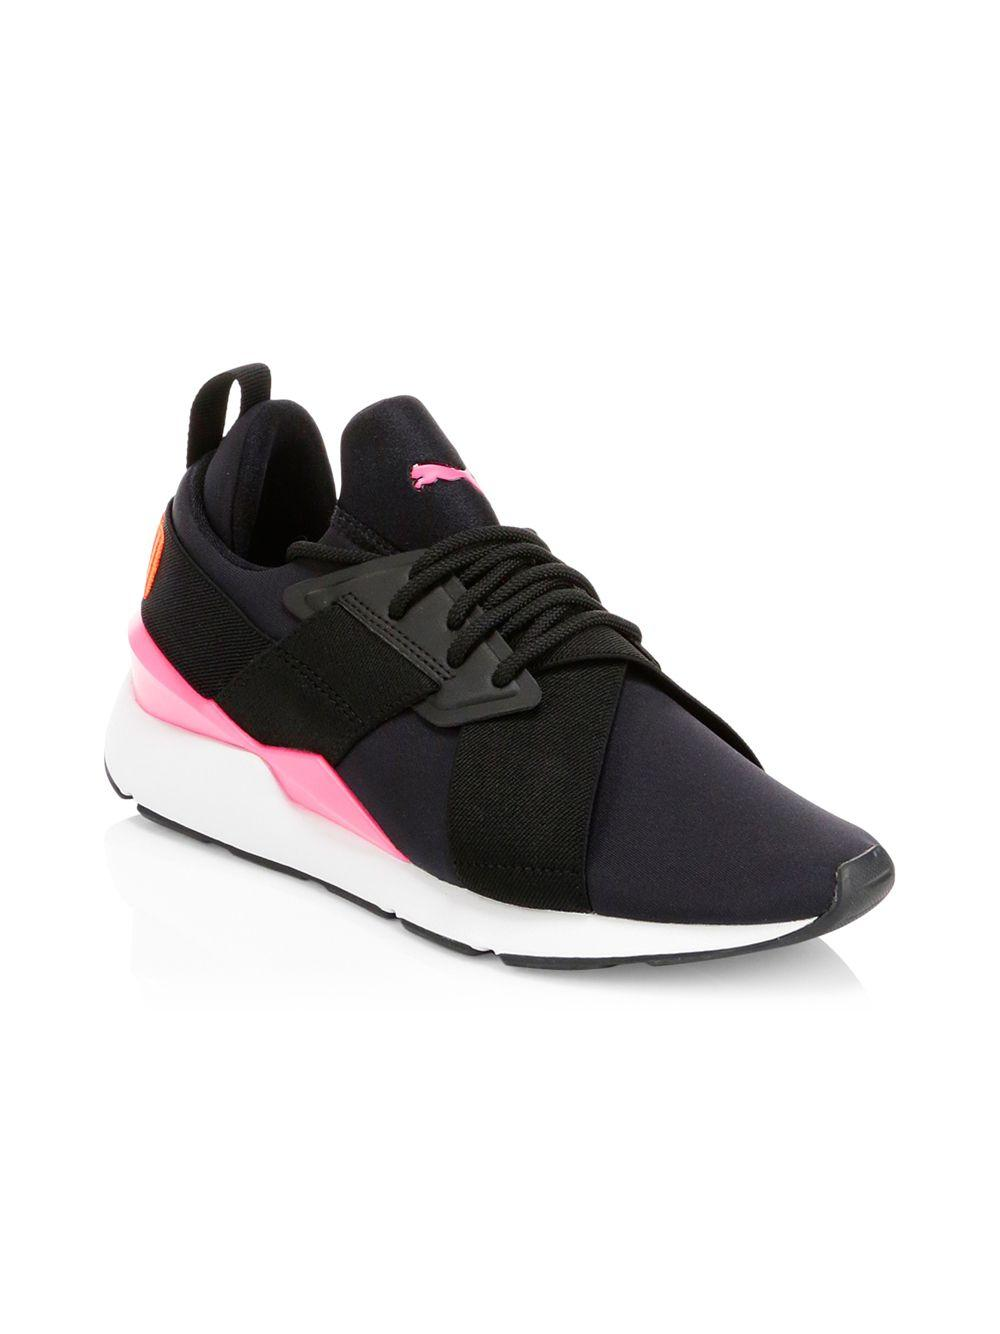 136cbae52f721d Lyst - PUMA Women s Muse Chase Sneakers - Black - Size 6.5 in Black - Save  39%